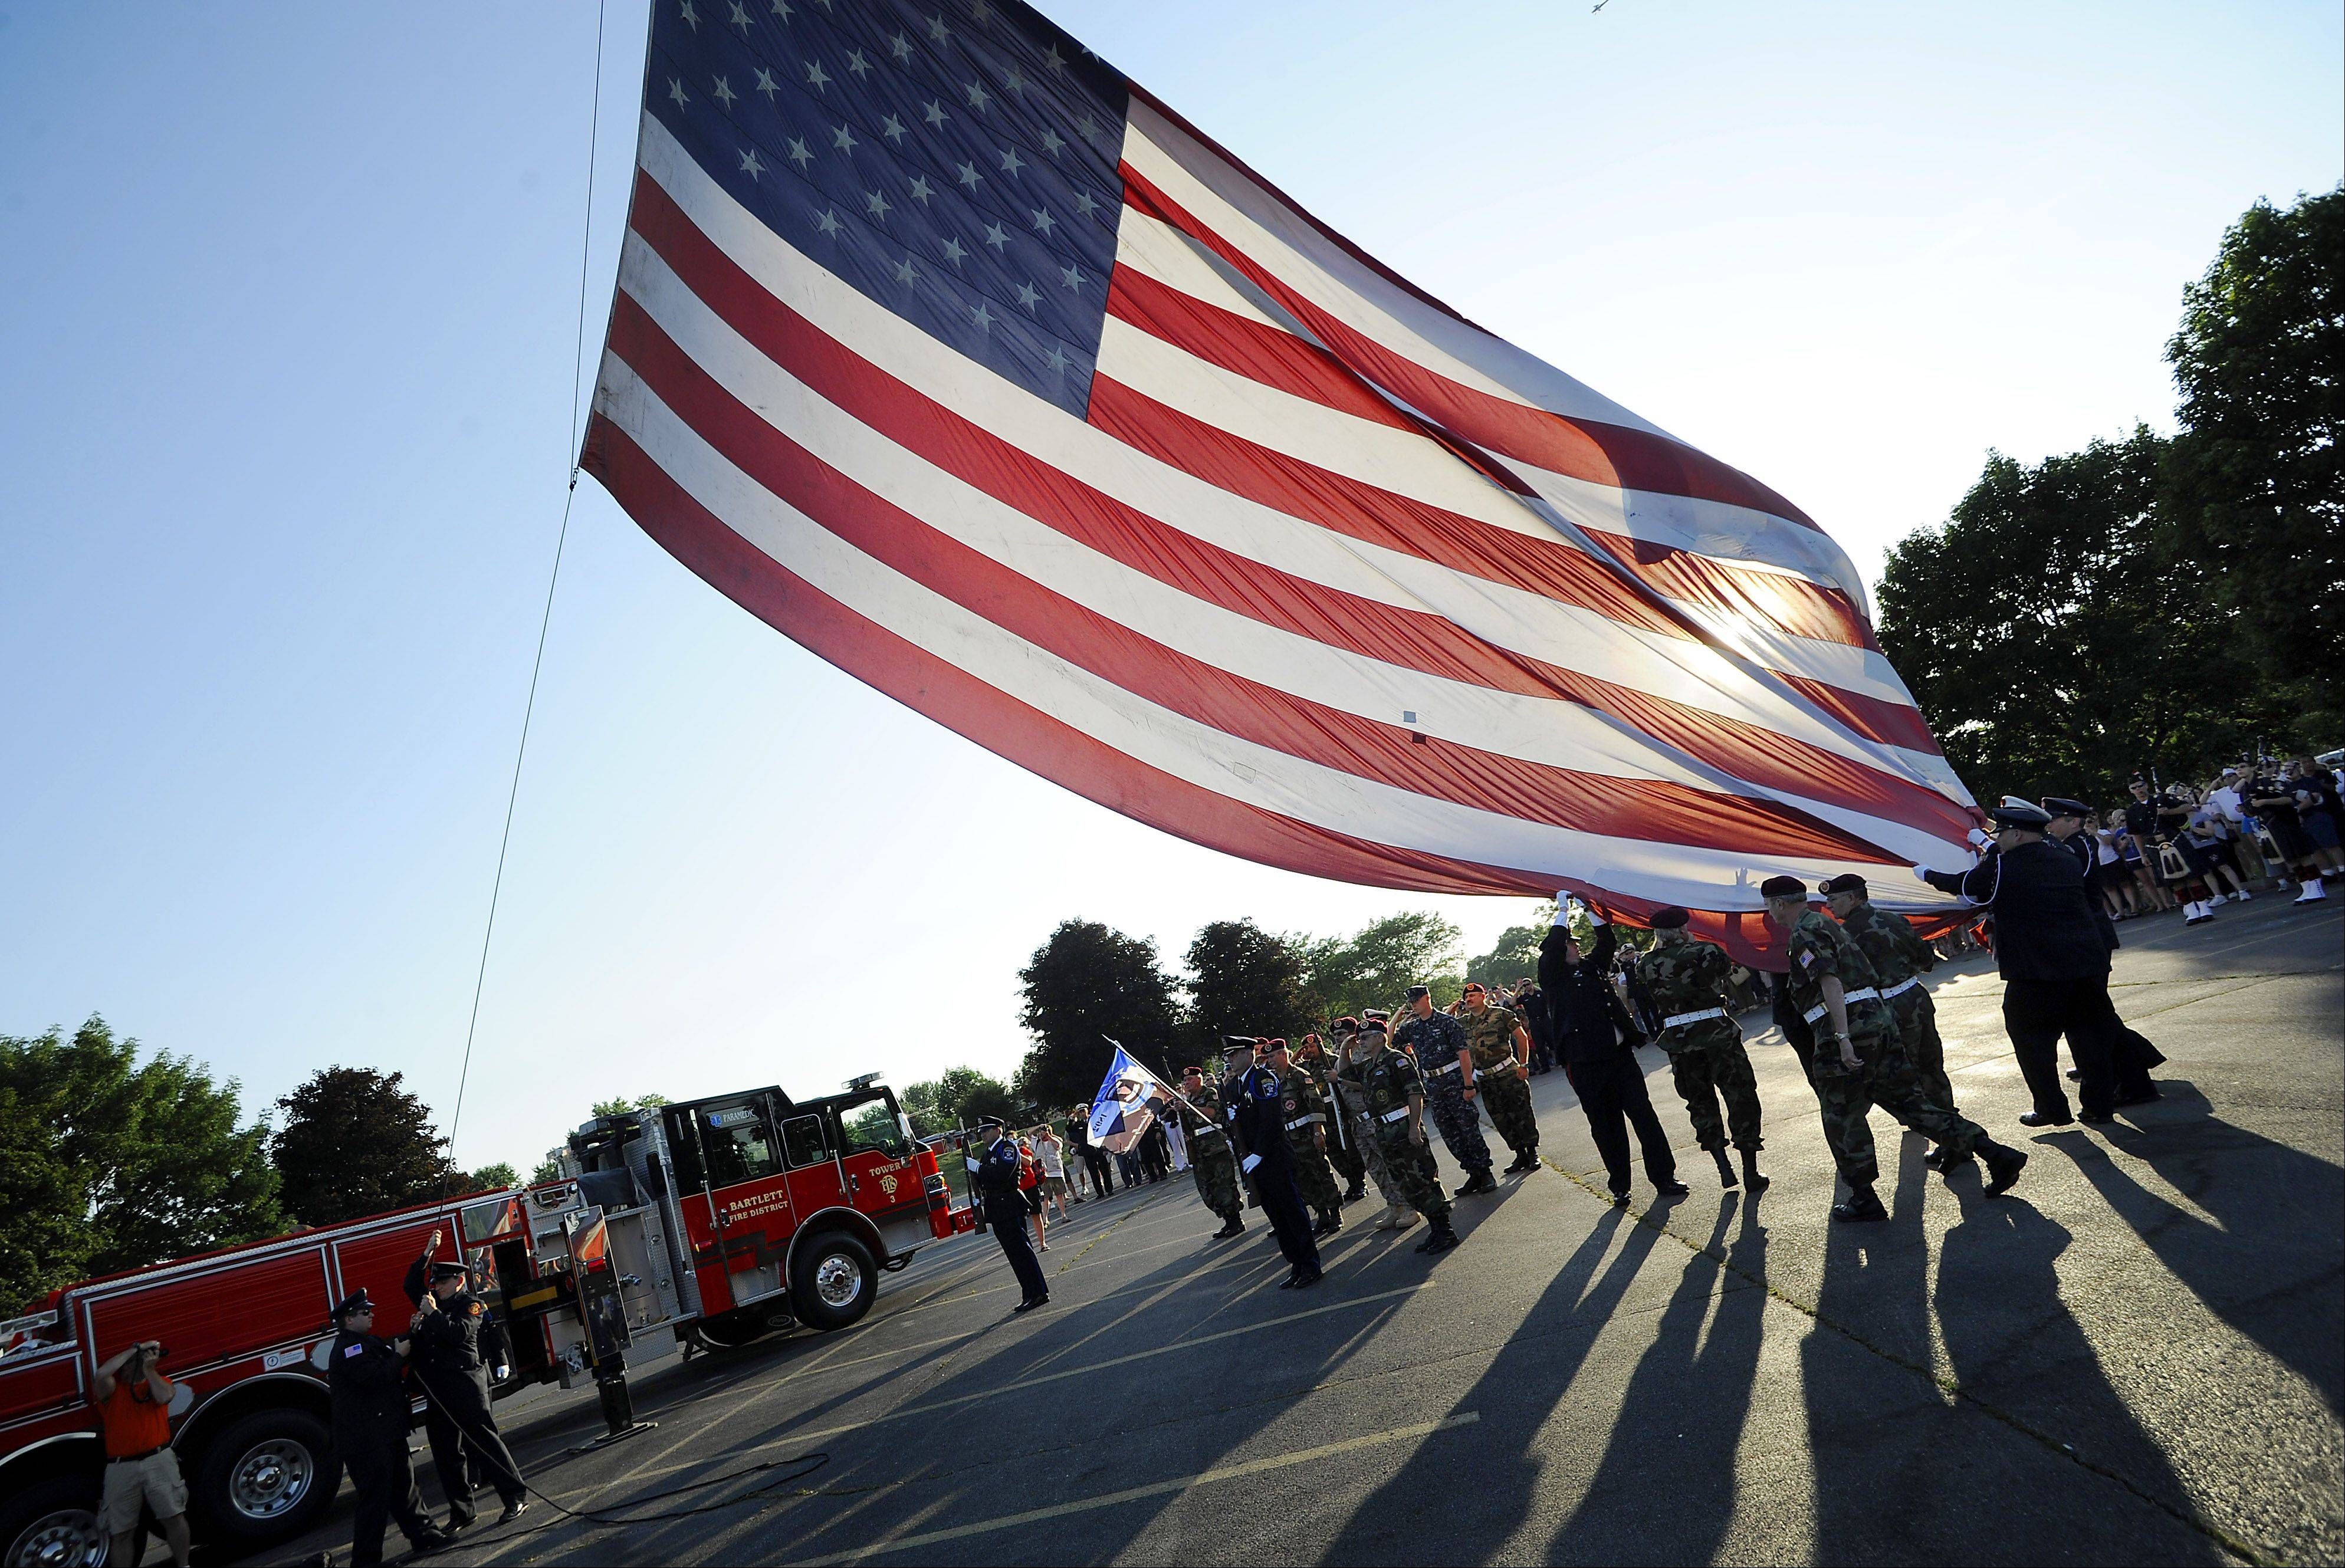 Images: The Patriot Flag in Bartlett